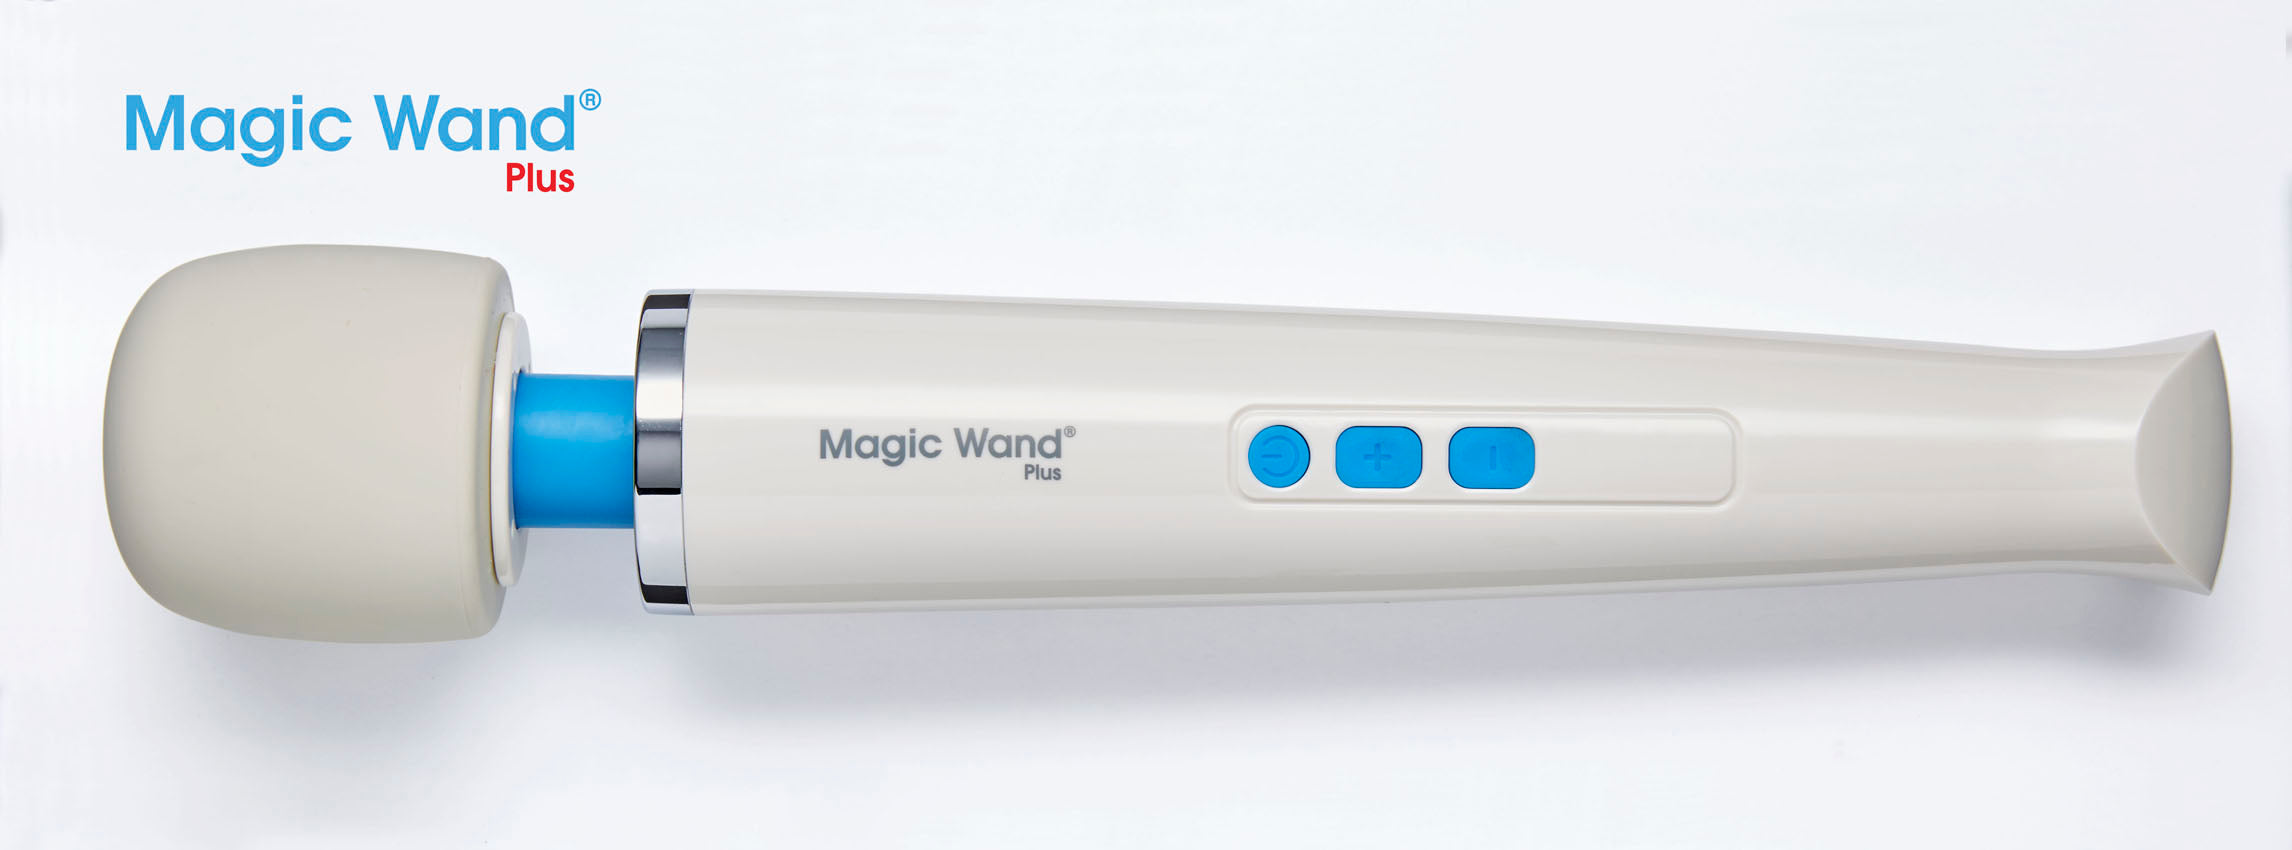 Magic Wand Plus - White